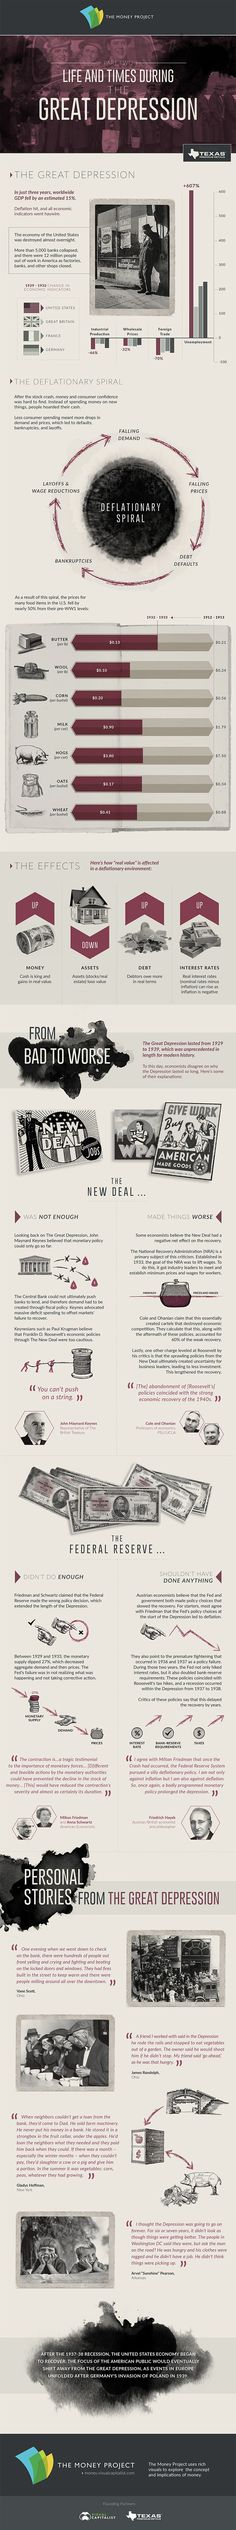 Life And Times During The Great Depression Infographic. Topic: economy, economics